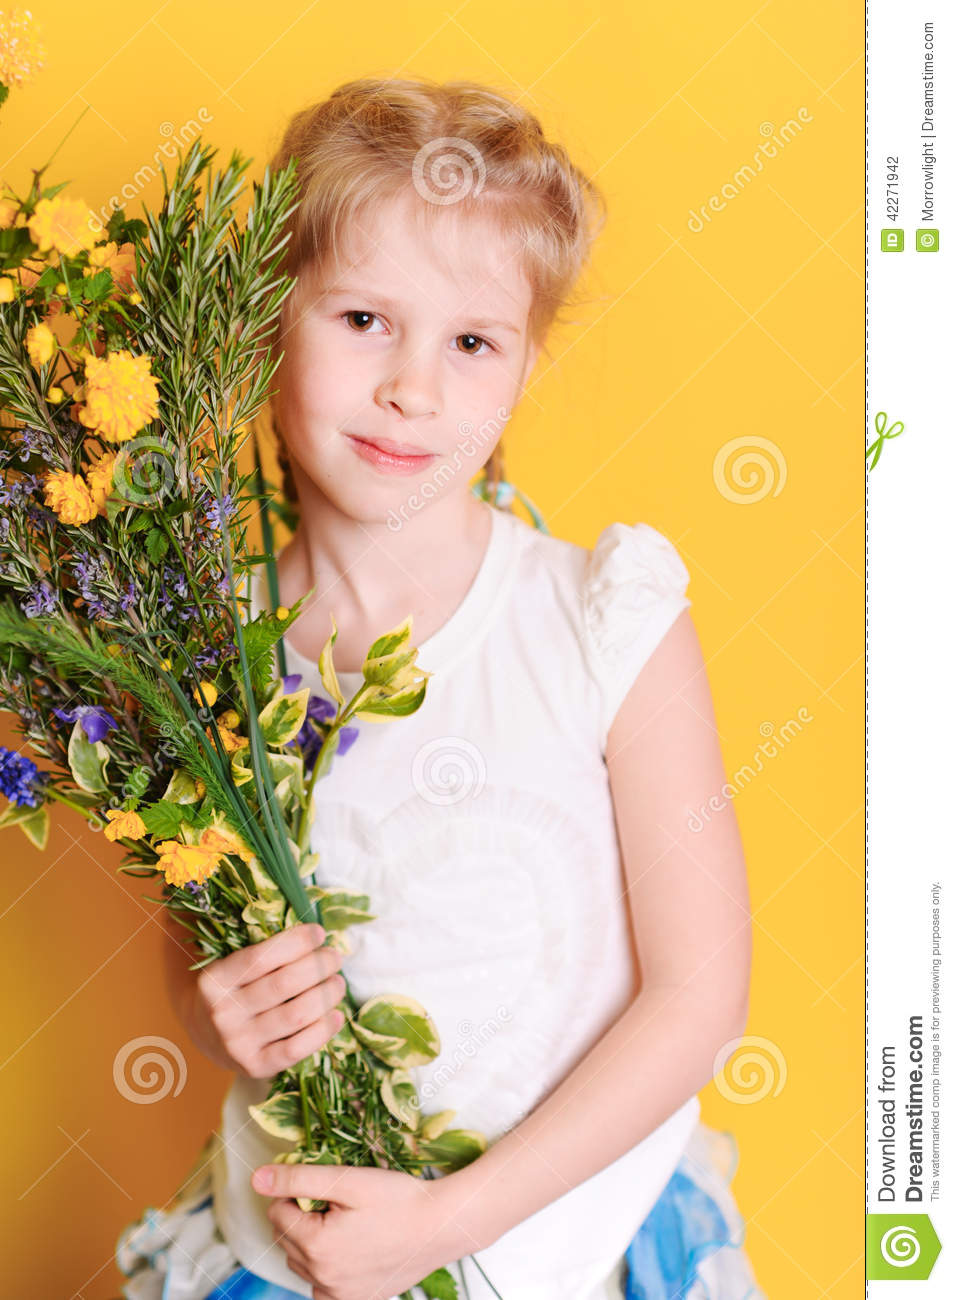 cute baby girl with meadow flowers stock photo - image of children